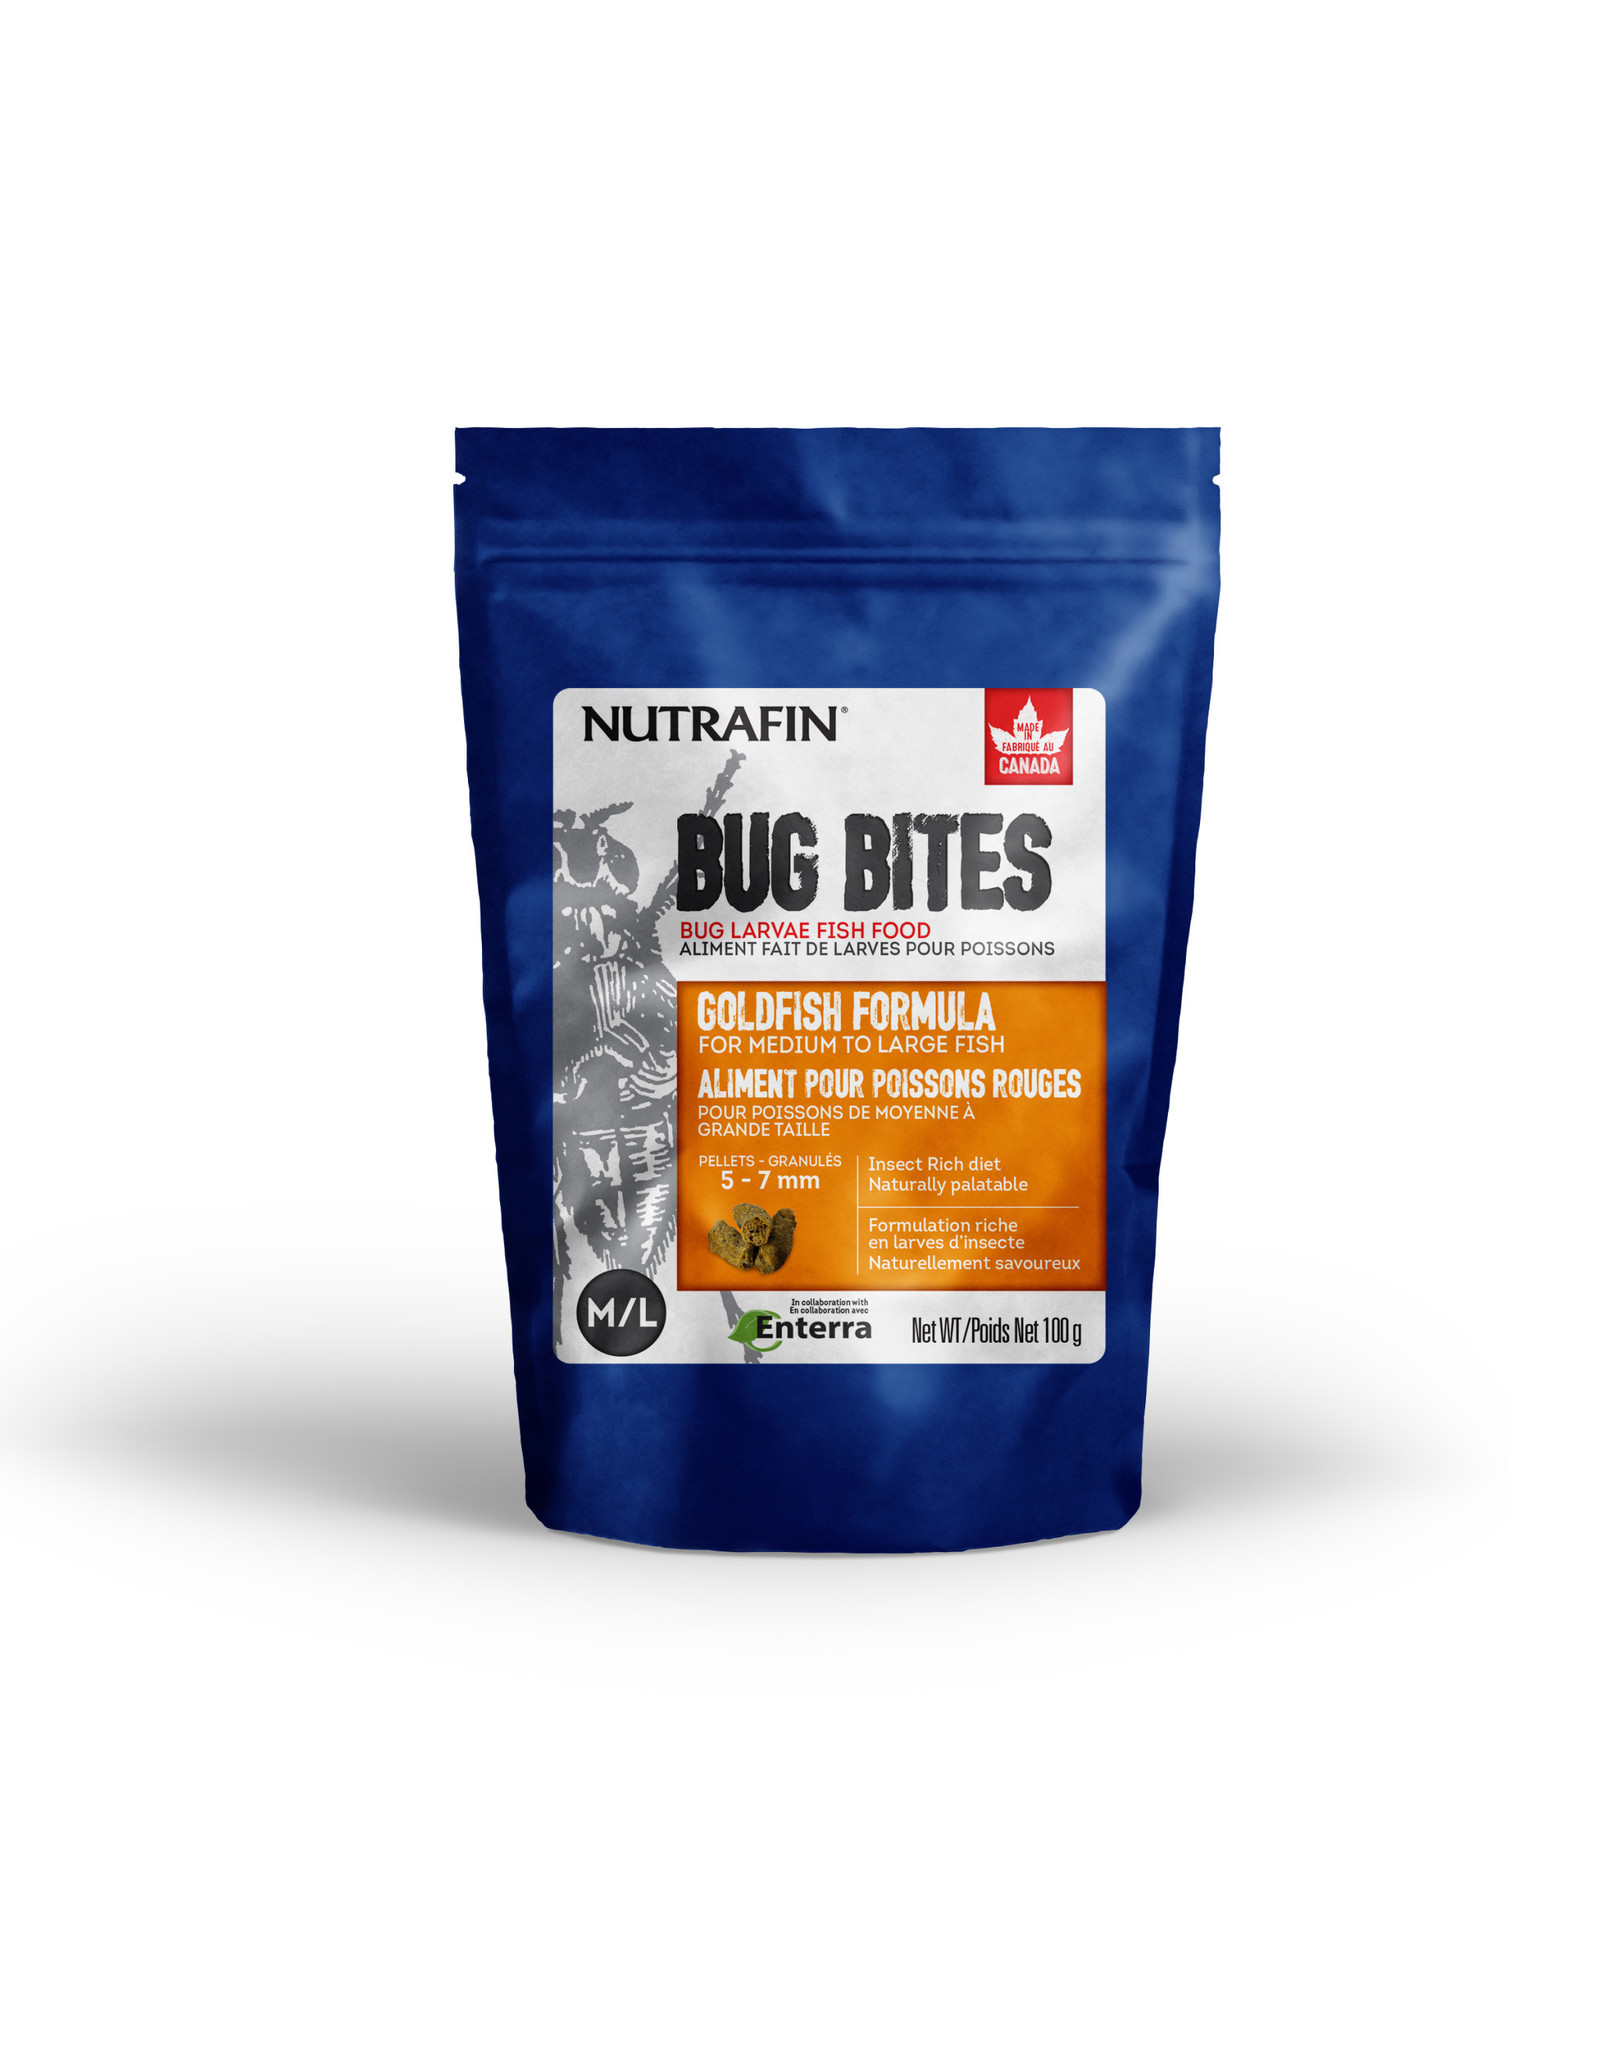 Nutrafin Bug Bites Goldfish Medium-Large 5-7mm Sticks for Goldfish